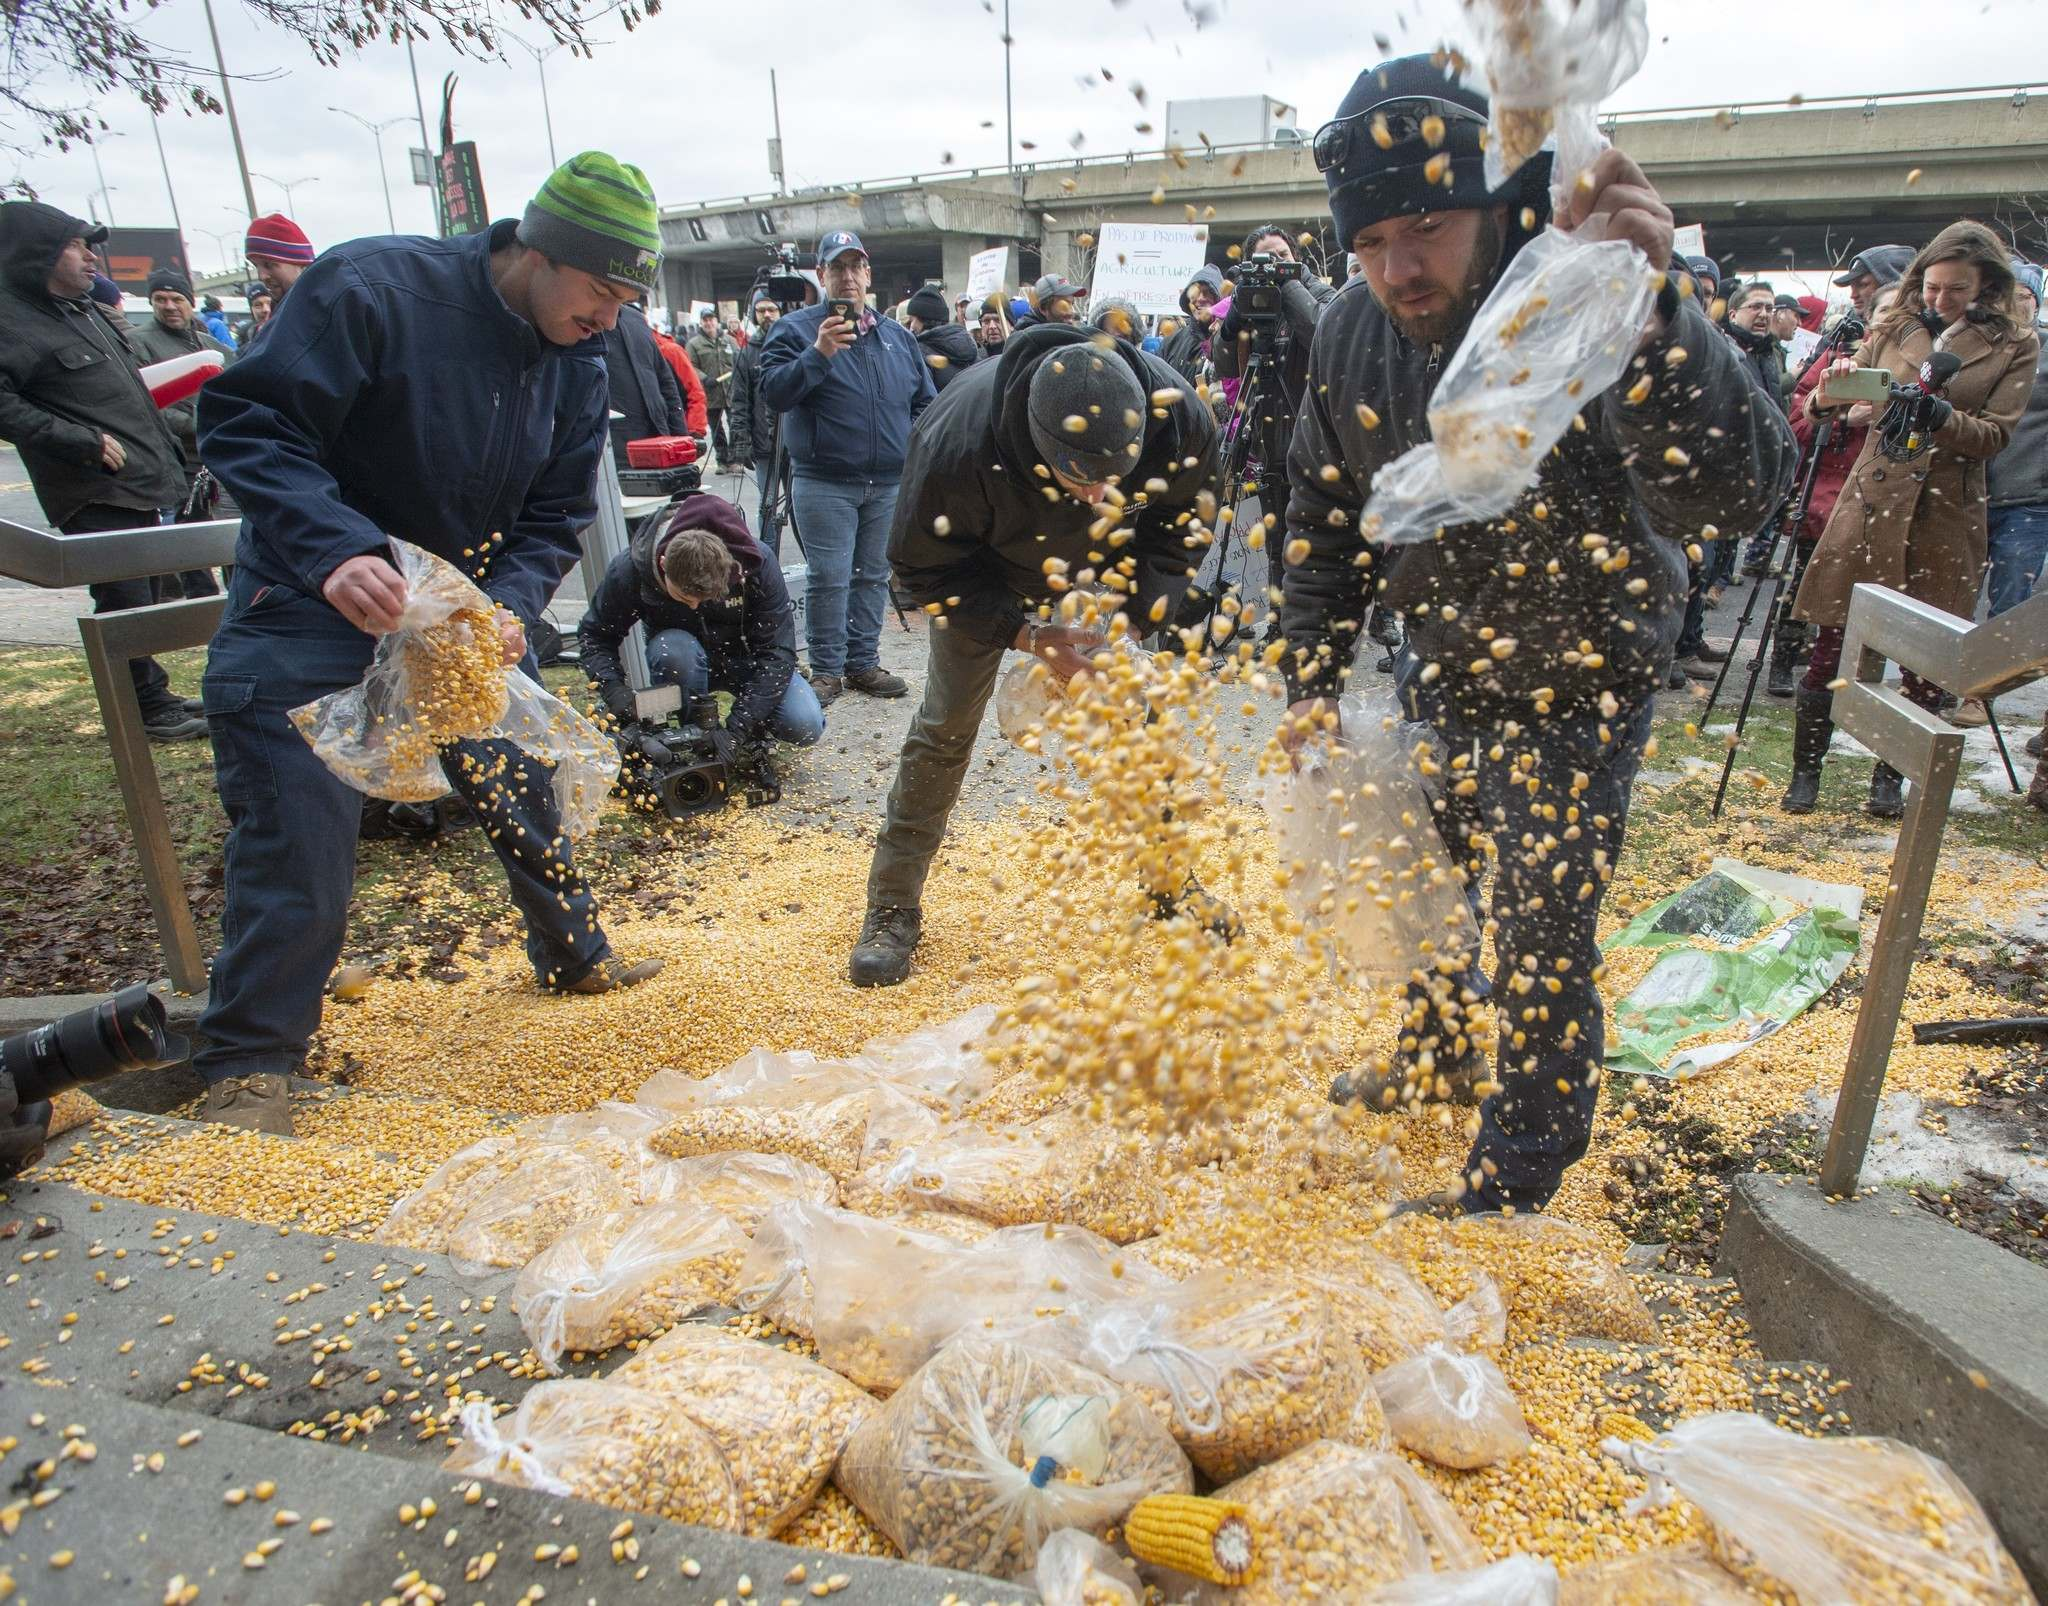 Farmers protesting the ongoing rail strike dump corn in front of the riding office of Prime Minister Justin Trudeau Monday in Montreal. (Ryan Remiorz / The Canadian Press)